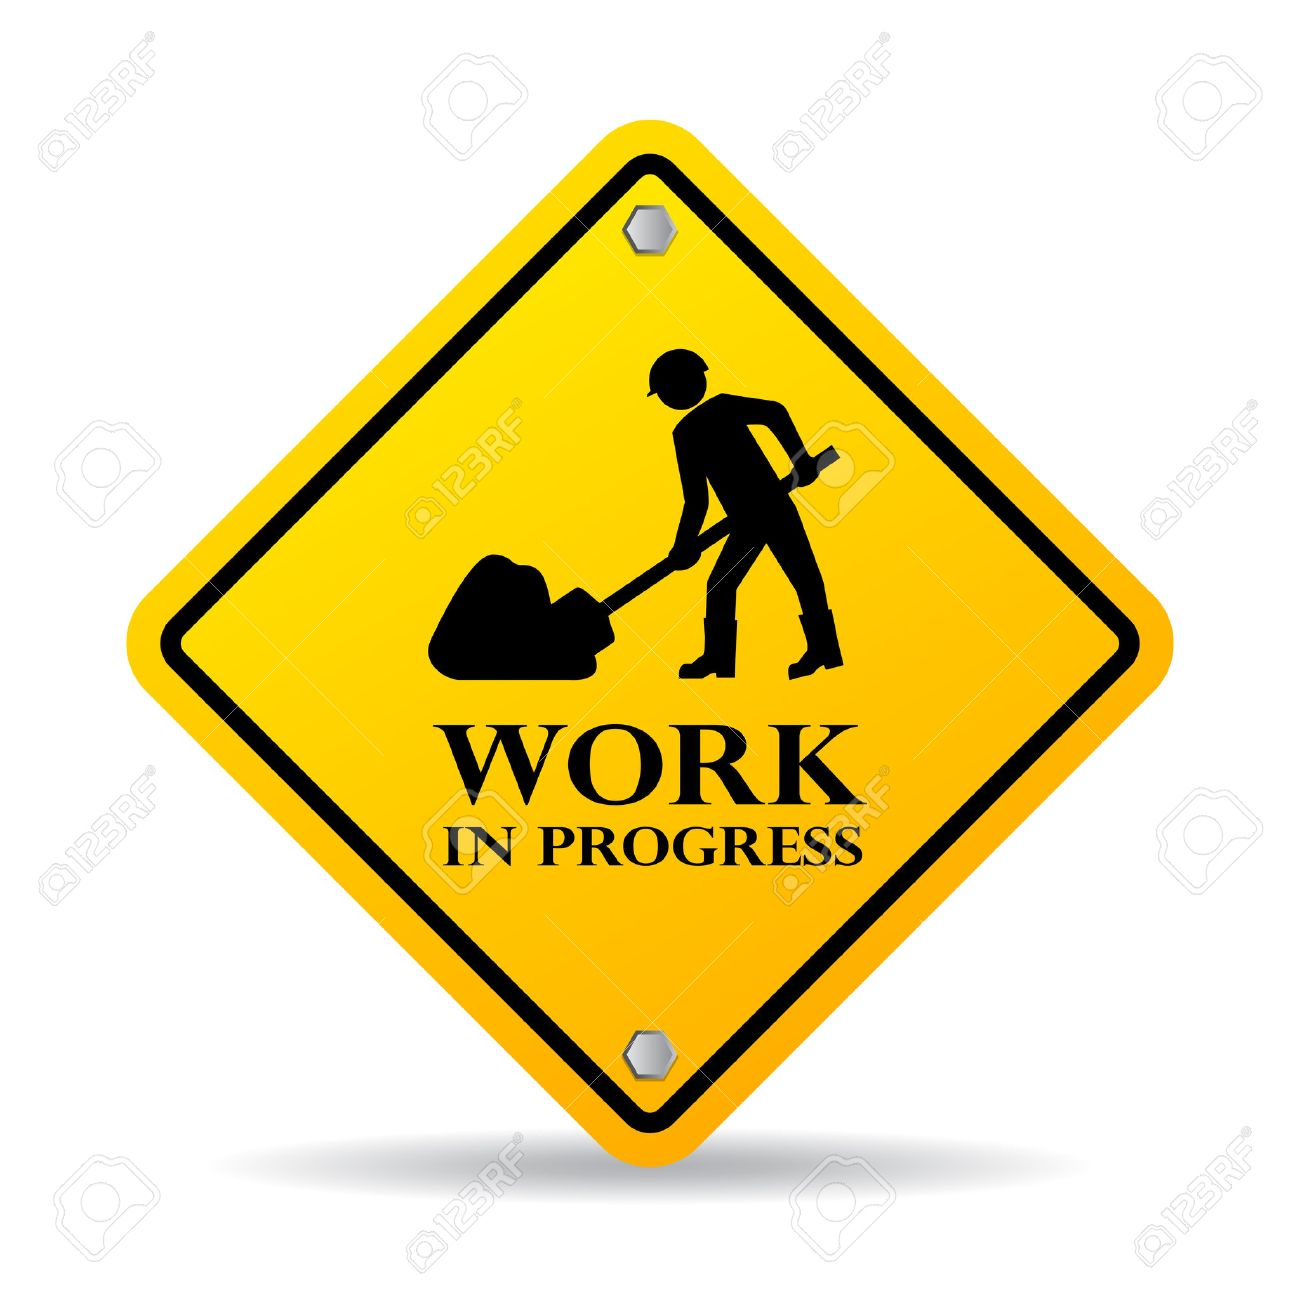 work in progress sign royalty free cliparts vectors and stock